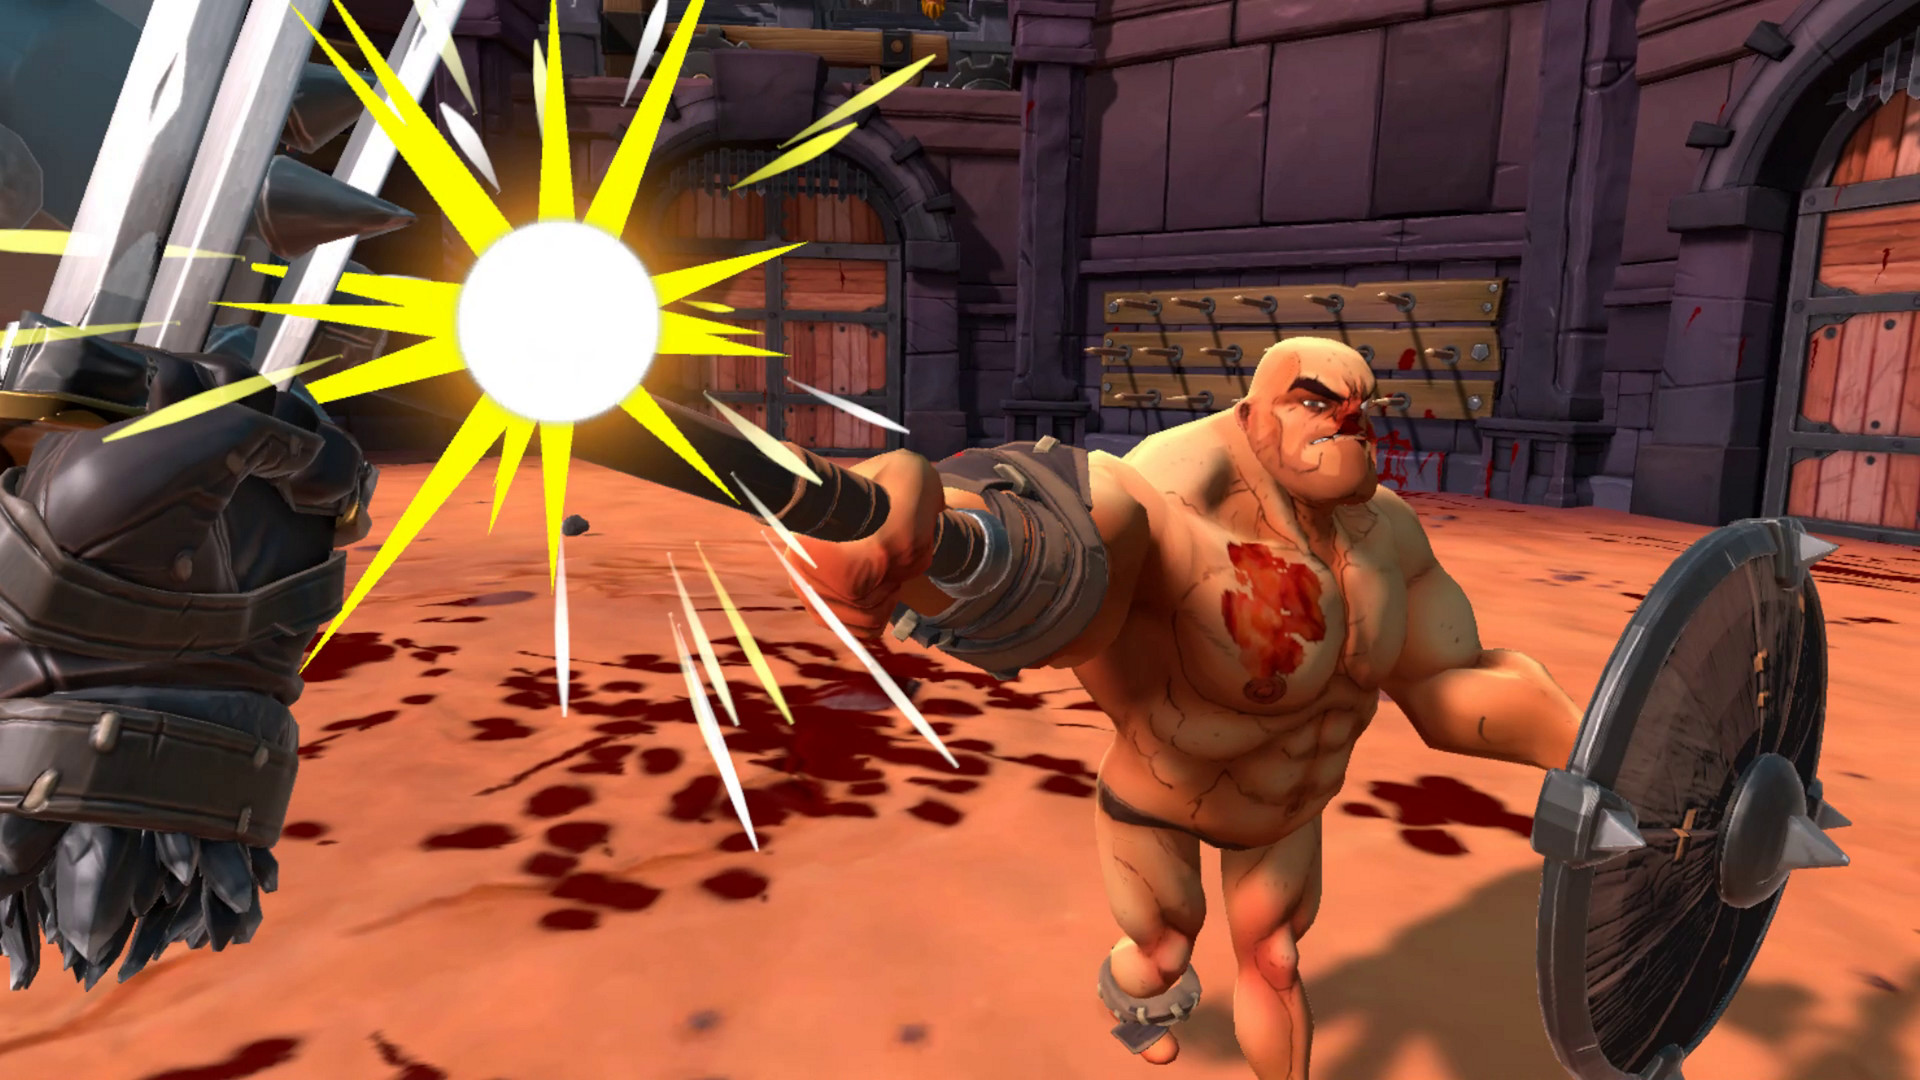 Gladiator Sim 'GORN' is Finally Coming to Oculus Quest Next Week